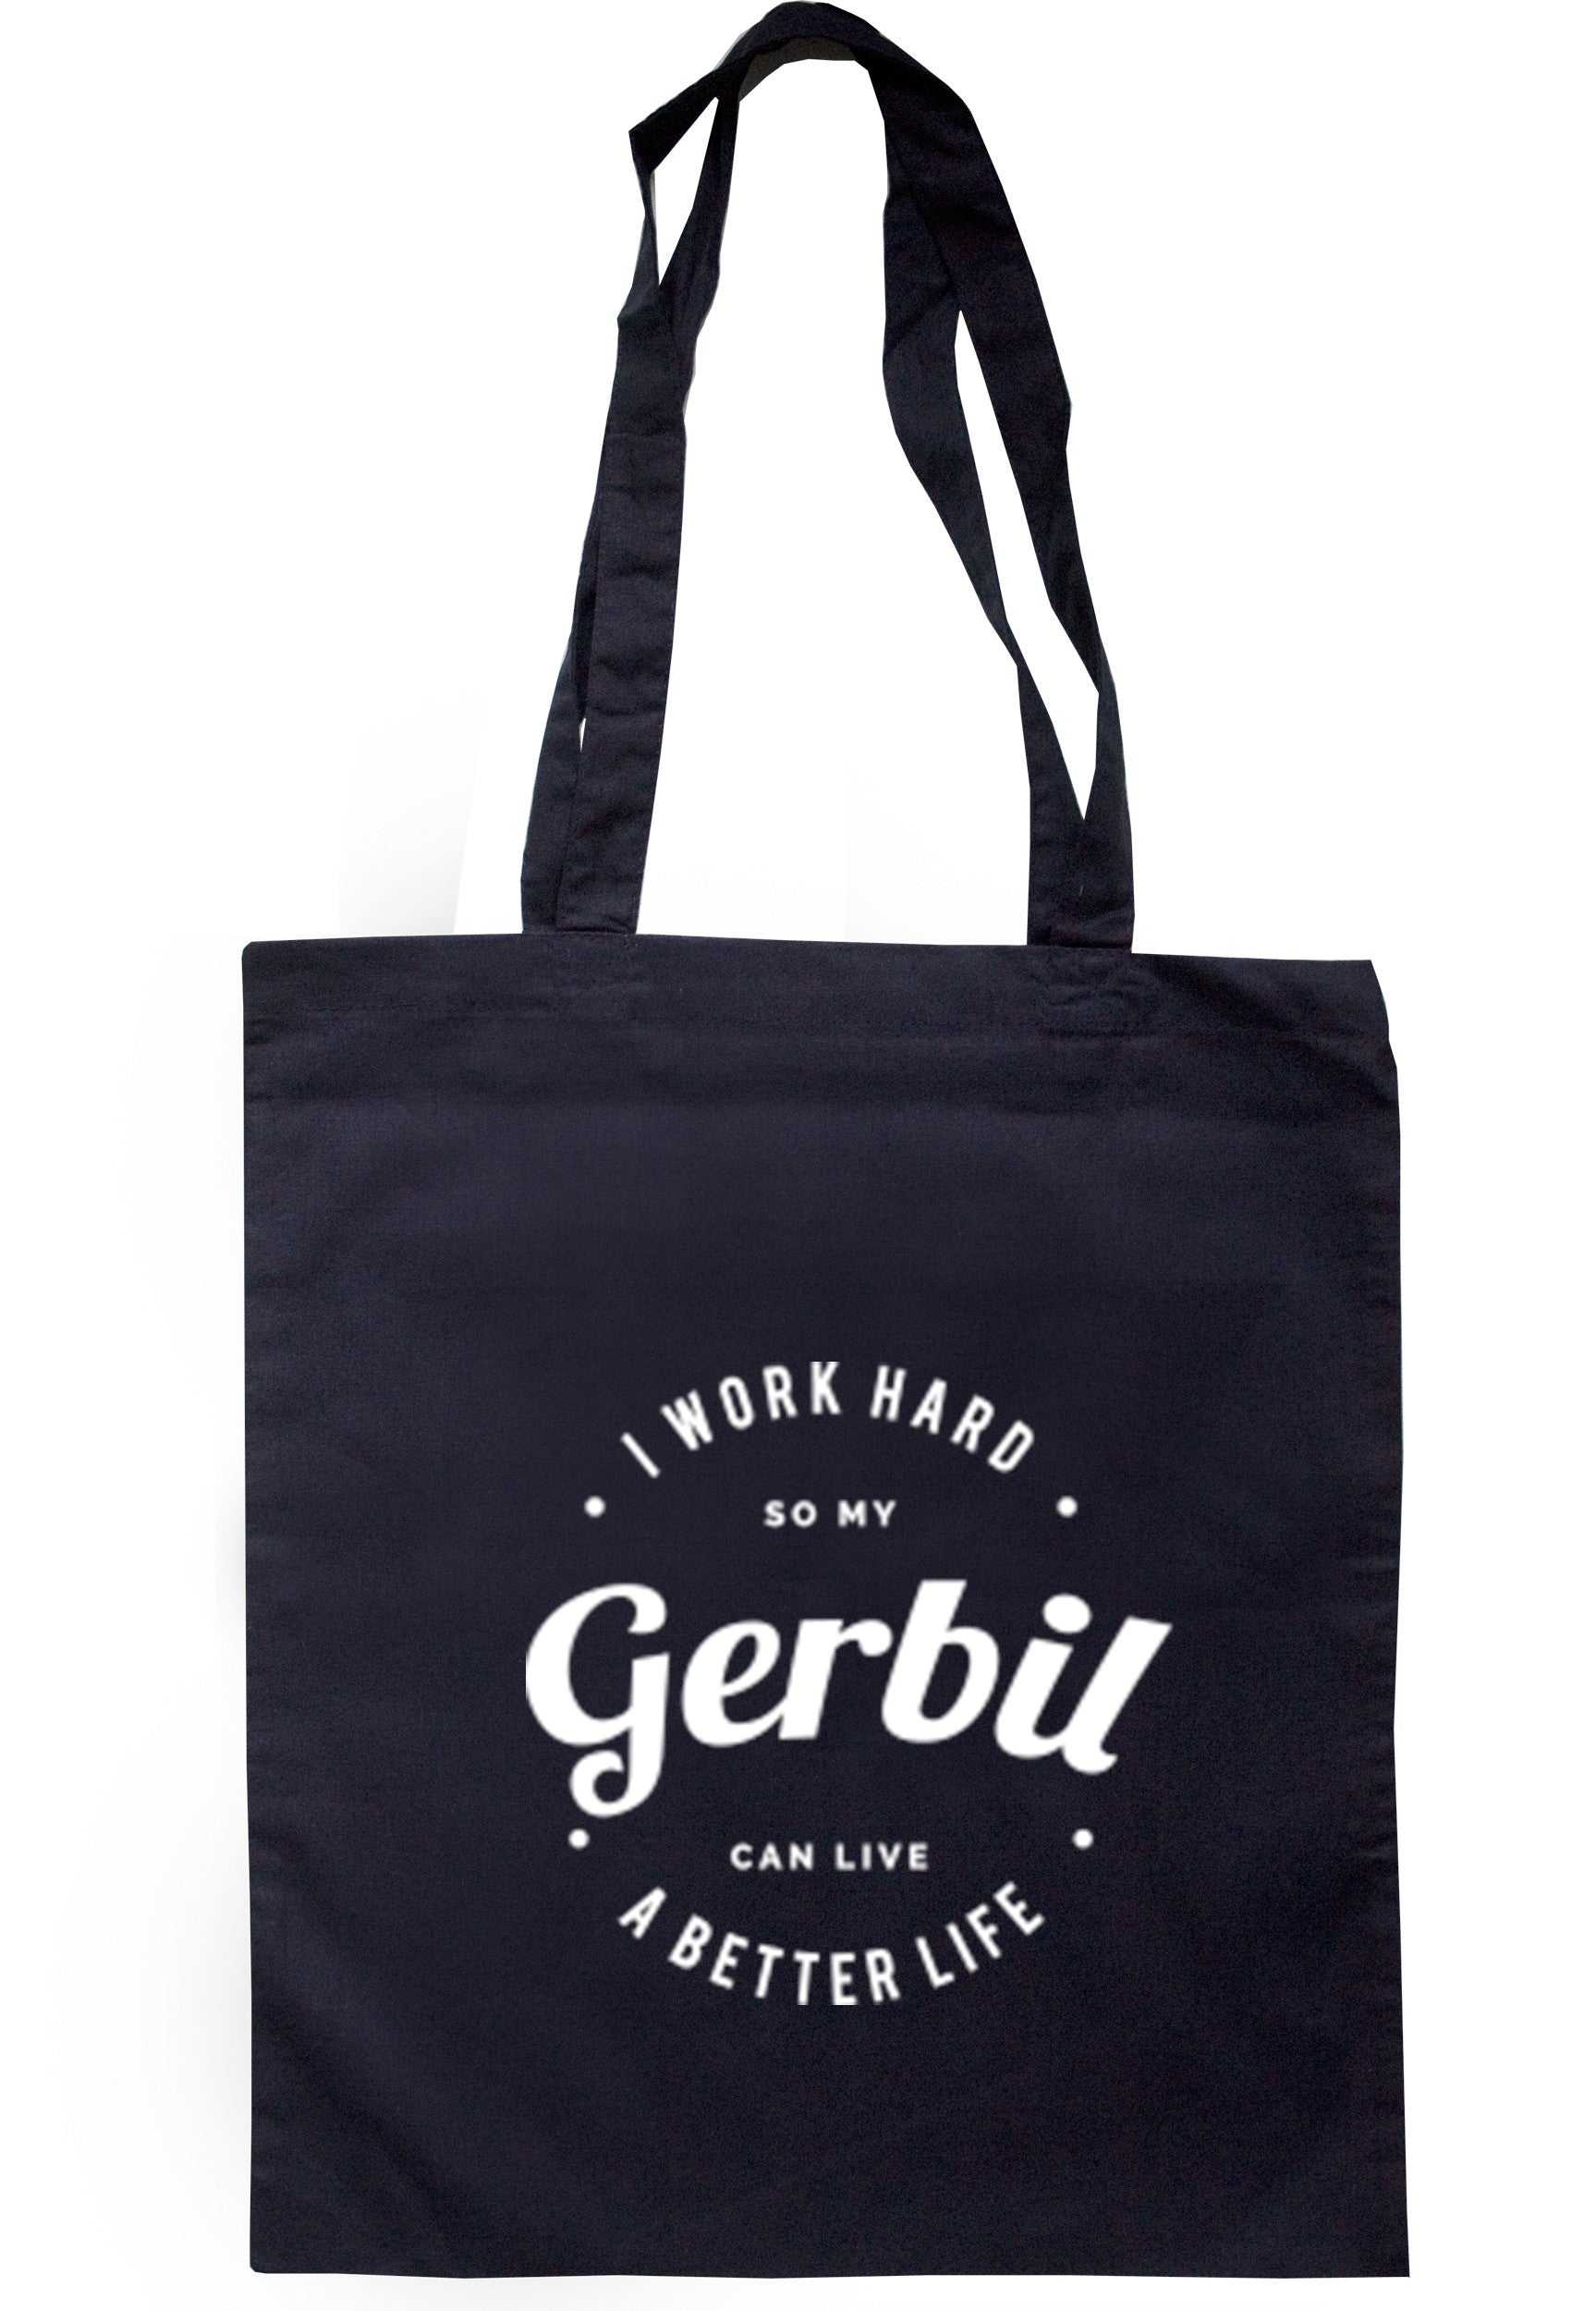 I Work Hard So My Gerbil Can Live A Better Life Tote Bag TB0237 - Illustrated Identity Ltd.